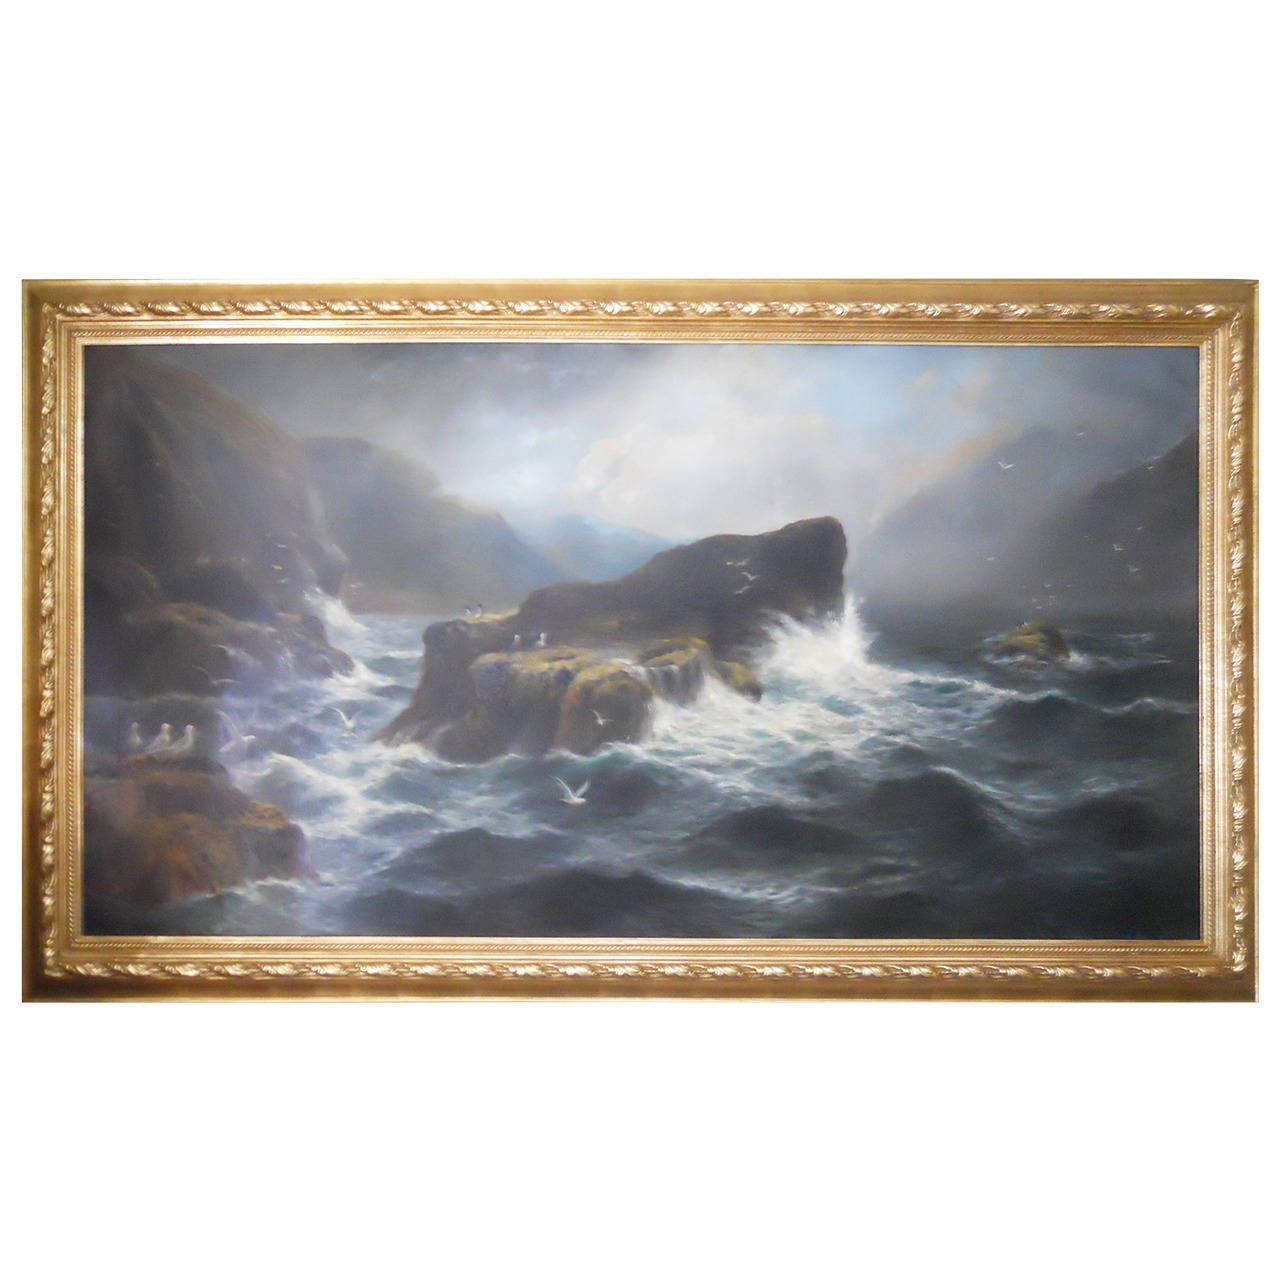 English country garden paintings - Astonishing Daniel Sherrin 19th Century Oil Painting Of A Seascape